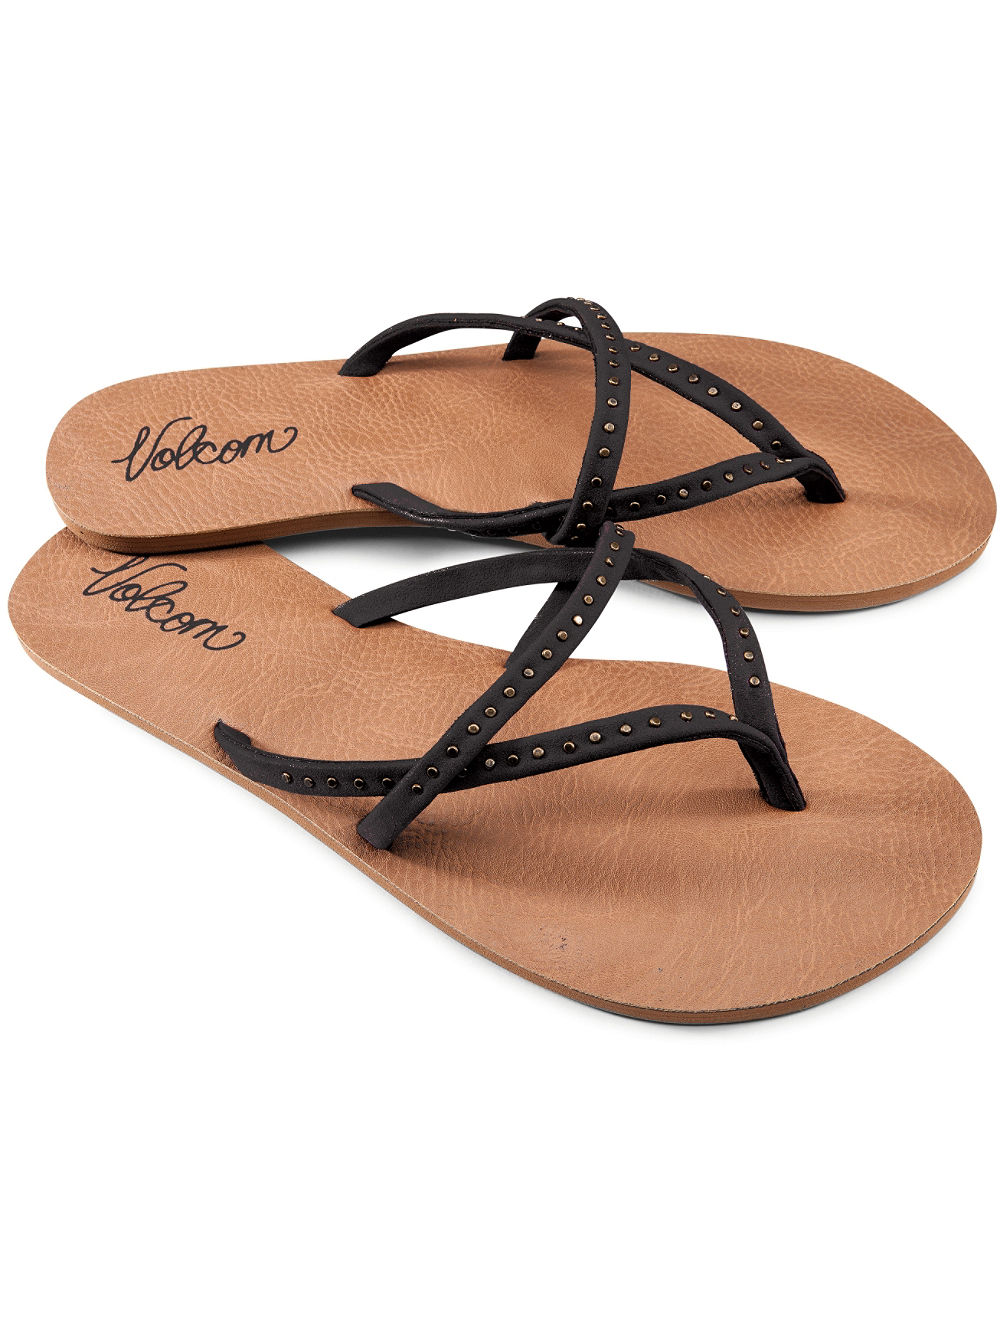 All Day Long Sandals Women